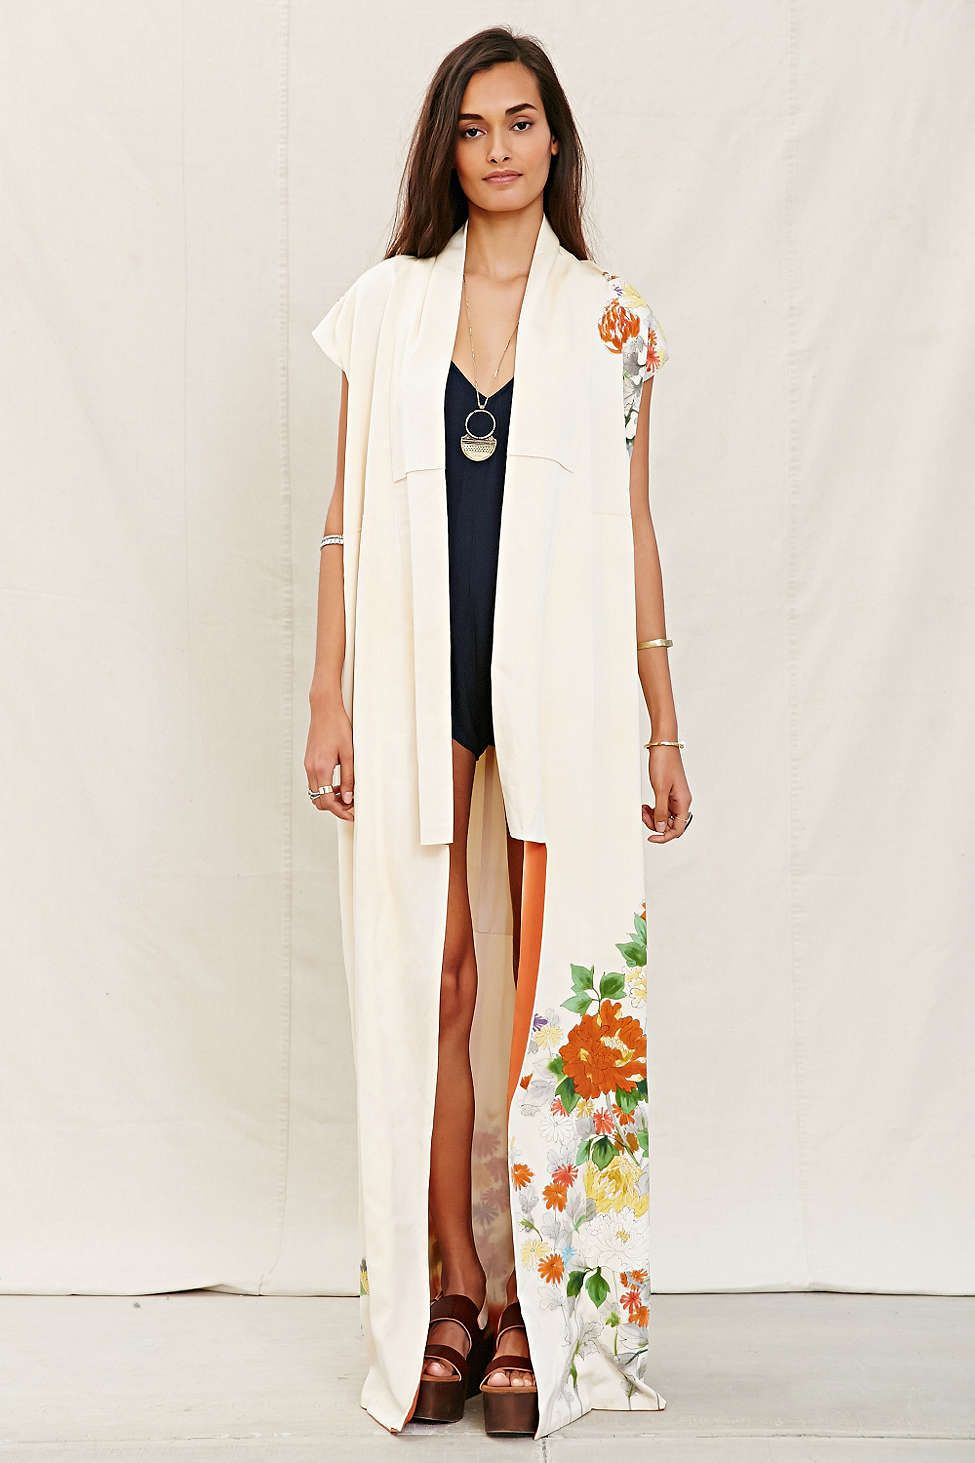 c0854aea0c80 Urban Renewal Recycled Sleeveless Kimono Jacket- Throw on over any outfit  as a finishing touch  stylesharescore